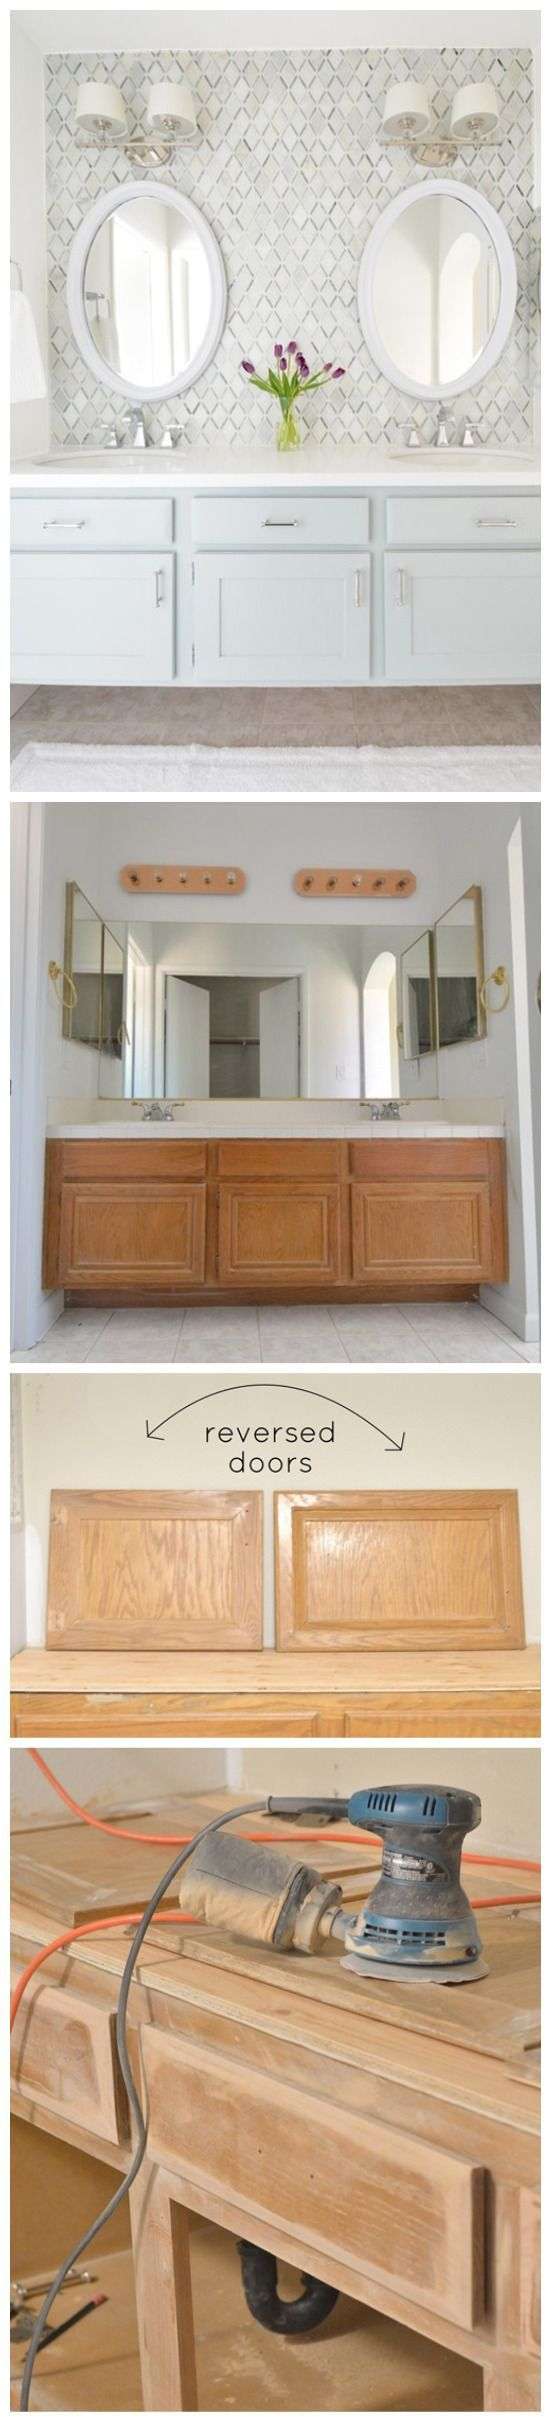 TIP: 1st, we updated the builder grade cabinet into a floating vanity raised to a 33″ height; reversed the doors to take advantage of the Shaker style on the other side; and beveled the drawer fronts edges, removing the curved ogee edge with an orbital sander so they were refinished as curved and smooth. Painted vanity Silver Marlin by Benjamin Moore, it has a green undertone.